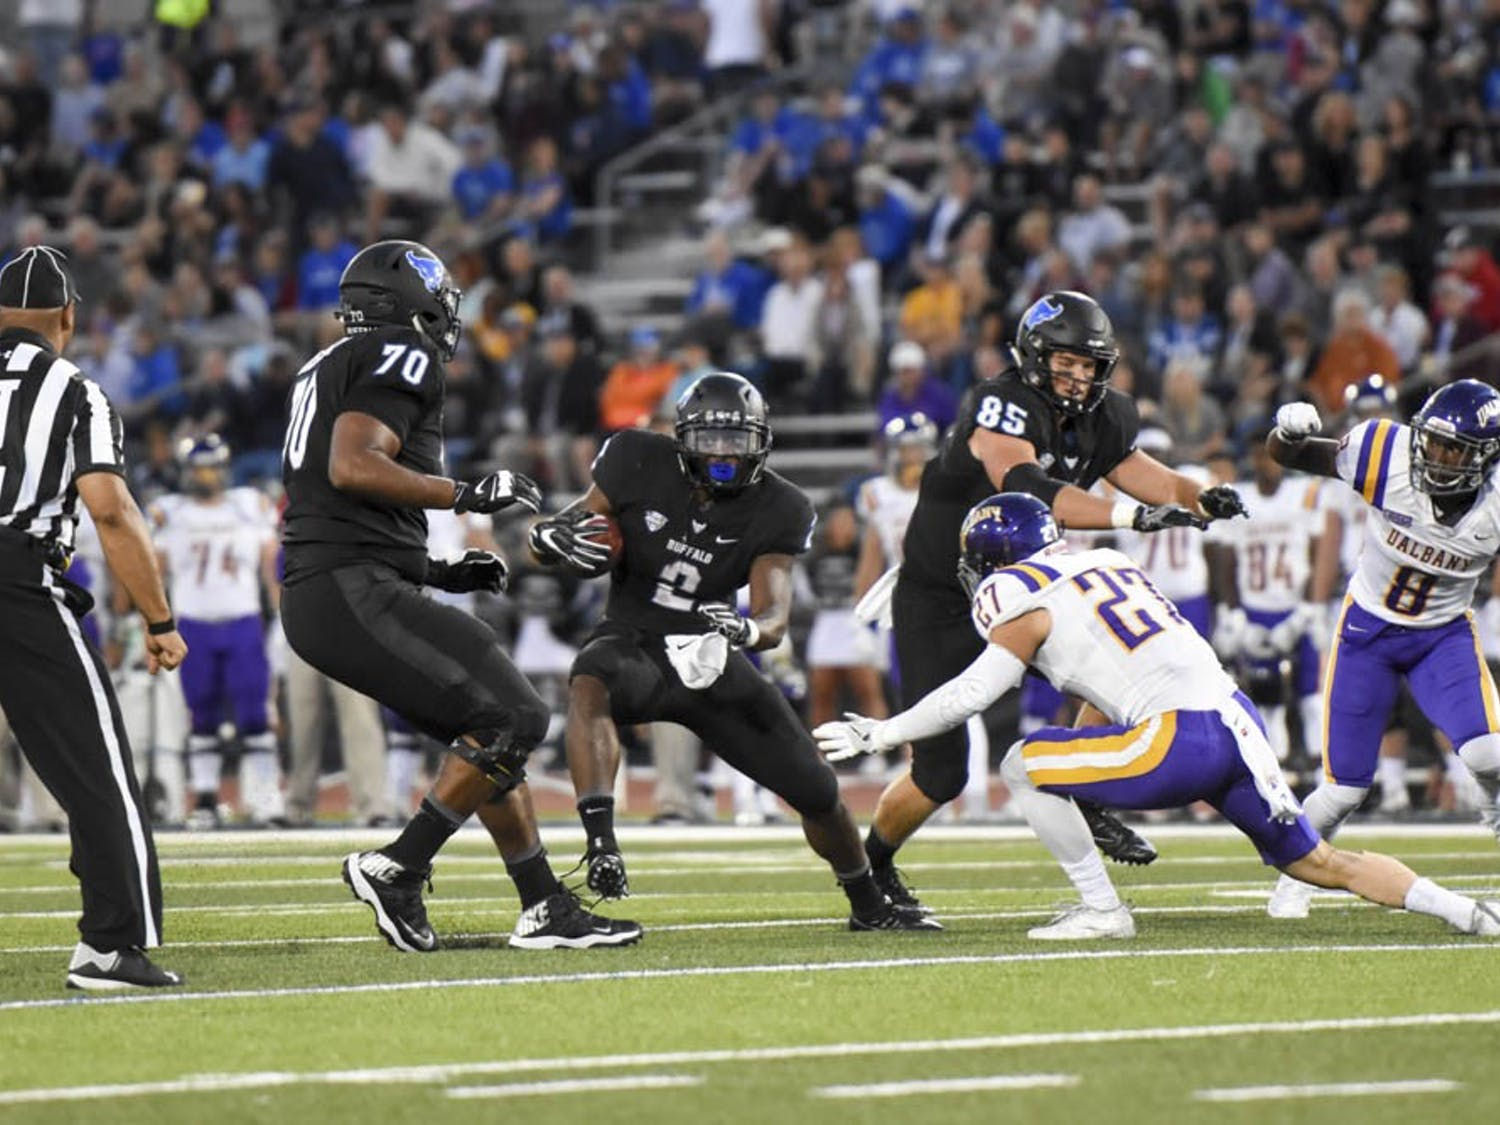 UB Bulls drop opening game to Albany 22-16 Friday night. This was Buffalo's first home opener loss since 2009.